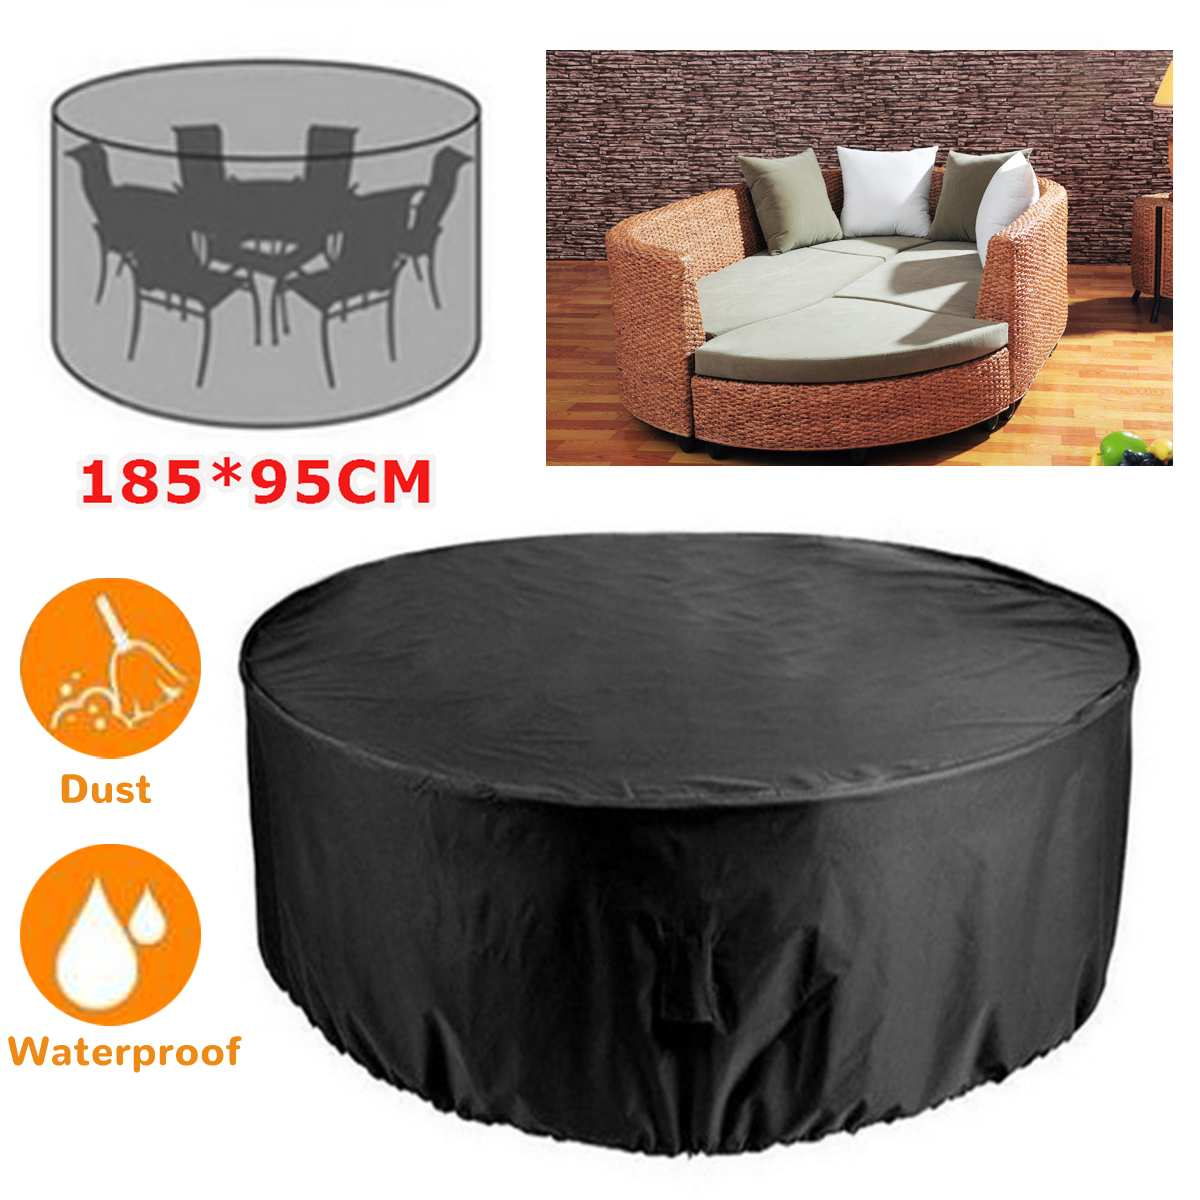 Round Anti-dust Cover Outdoor Garden Yard Patio Rain Snow Table Chair Furniture Waterproof Cover for Round Furniture 73x38 Inch